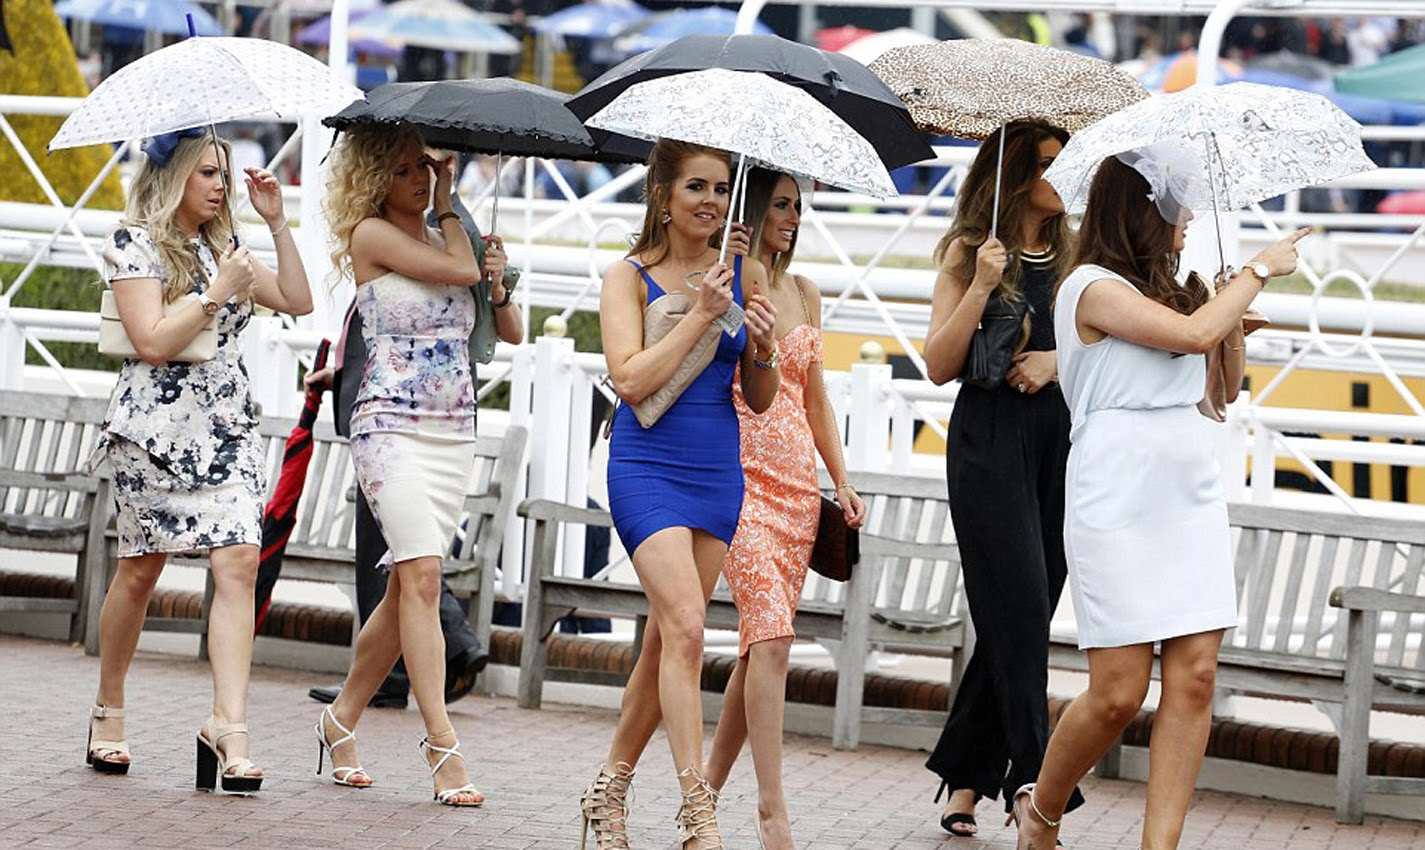 Video Shows Brutal Five Woman Stiletto Brawl At The Races ladiesday